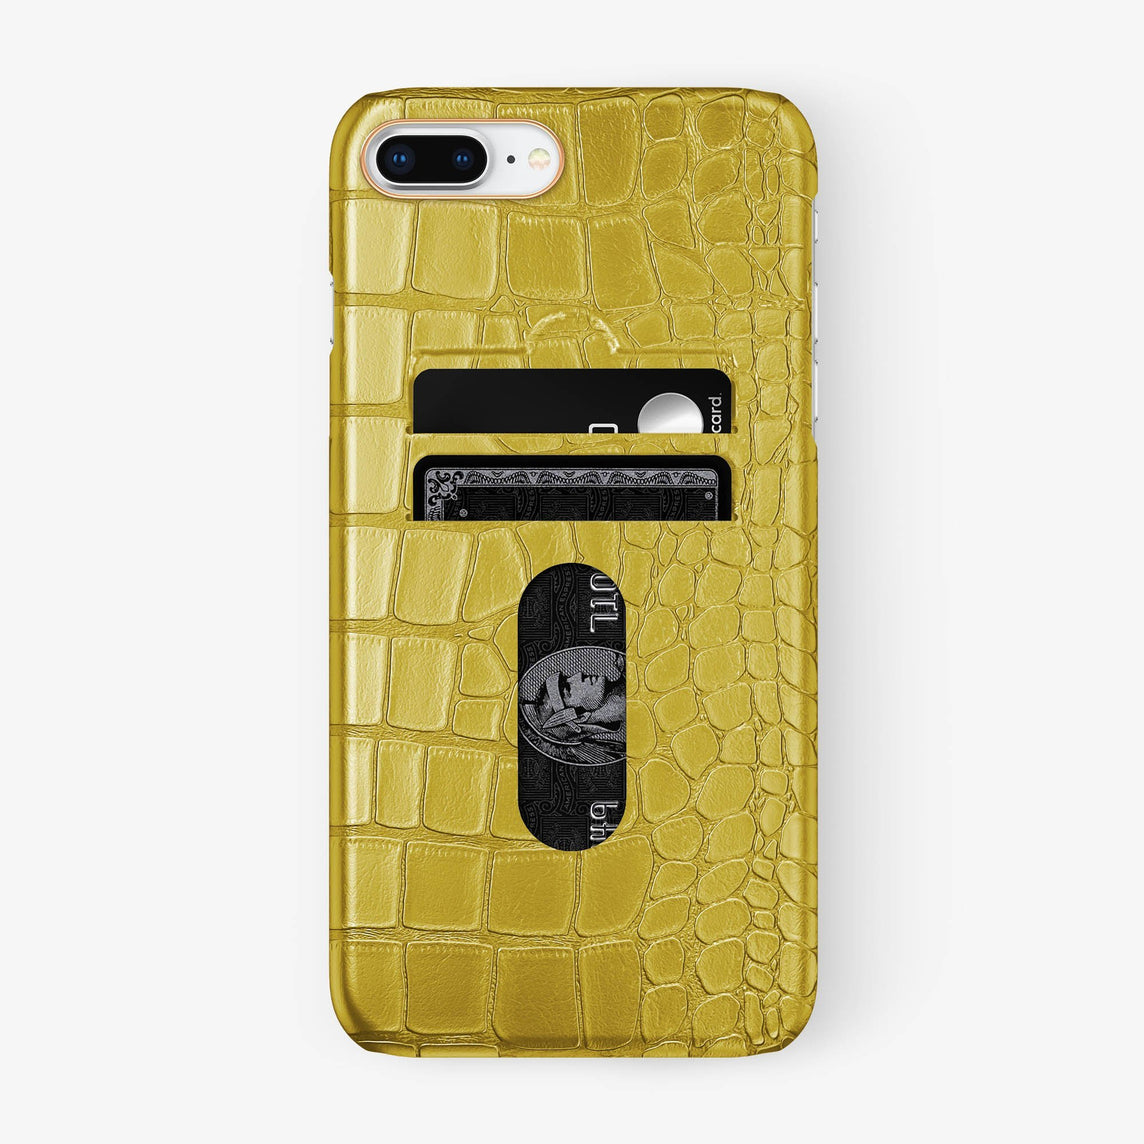 Alligator Card Holder Case iPhone 7/8 Plus | Yellow - Rose Gold - Hadoro